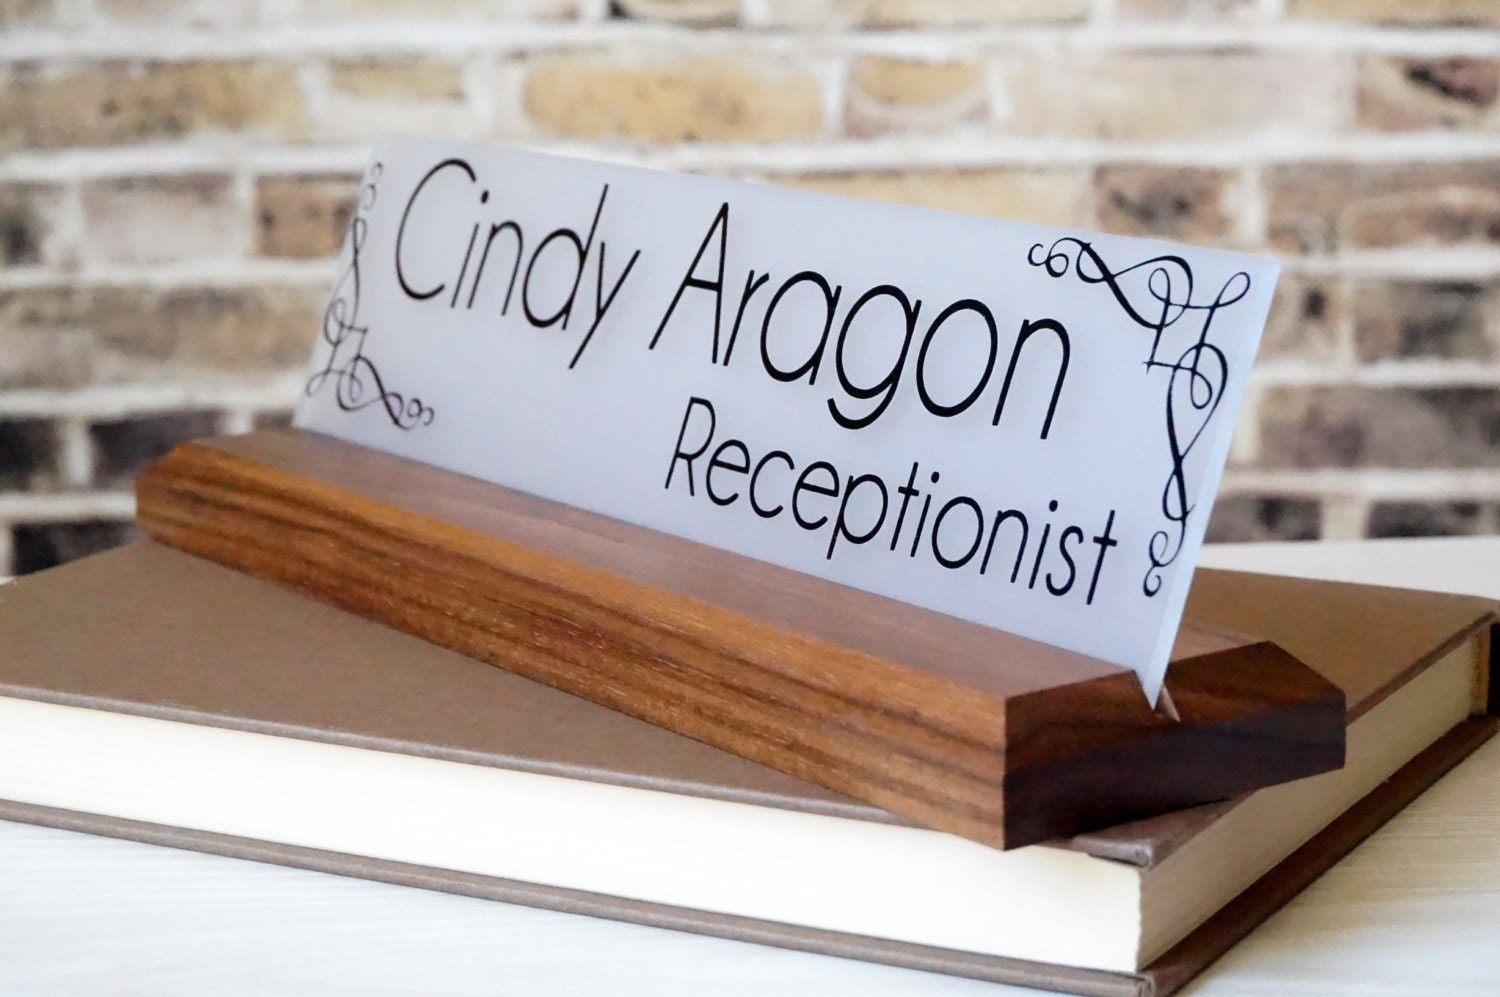 Office Name Plates: Desk Accessories Office Name Plate Personalized By GaroSigns